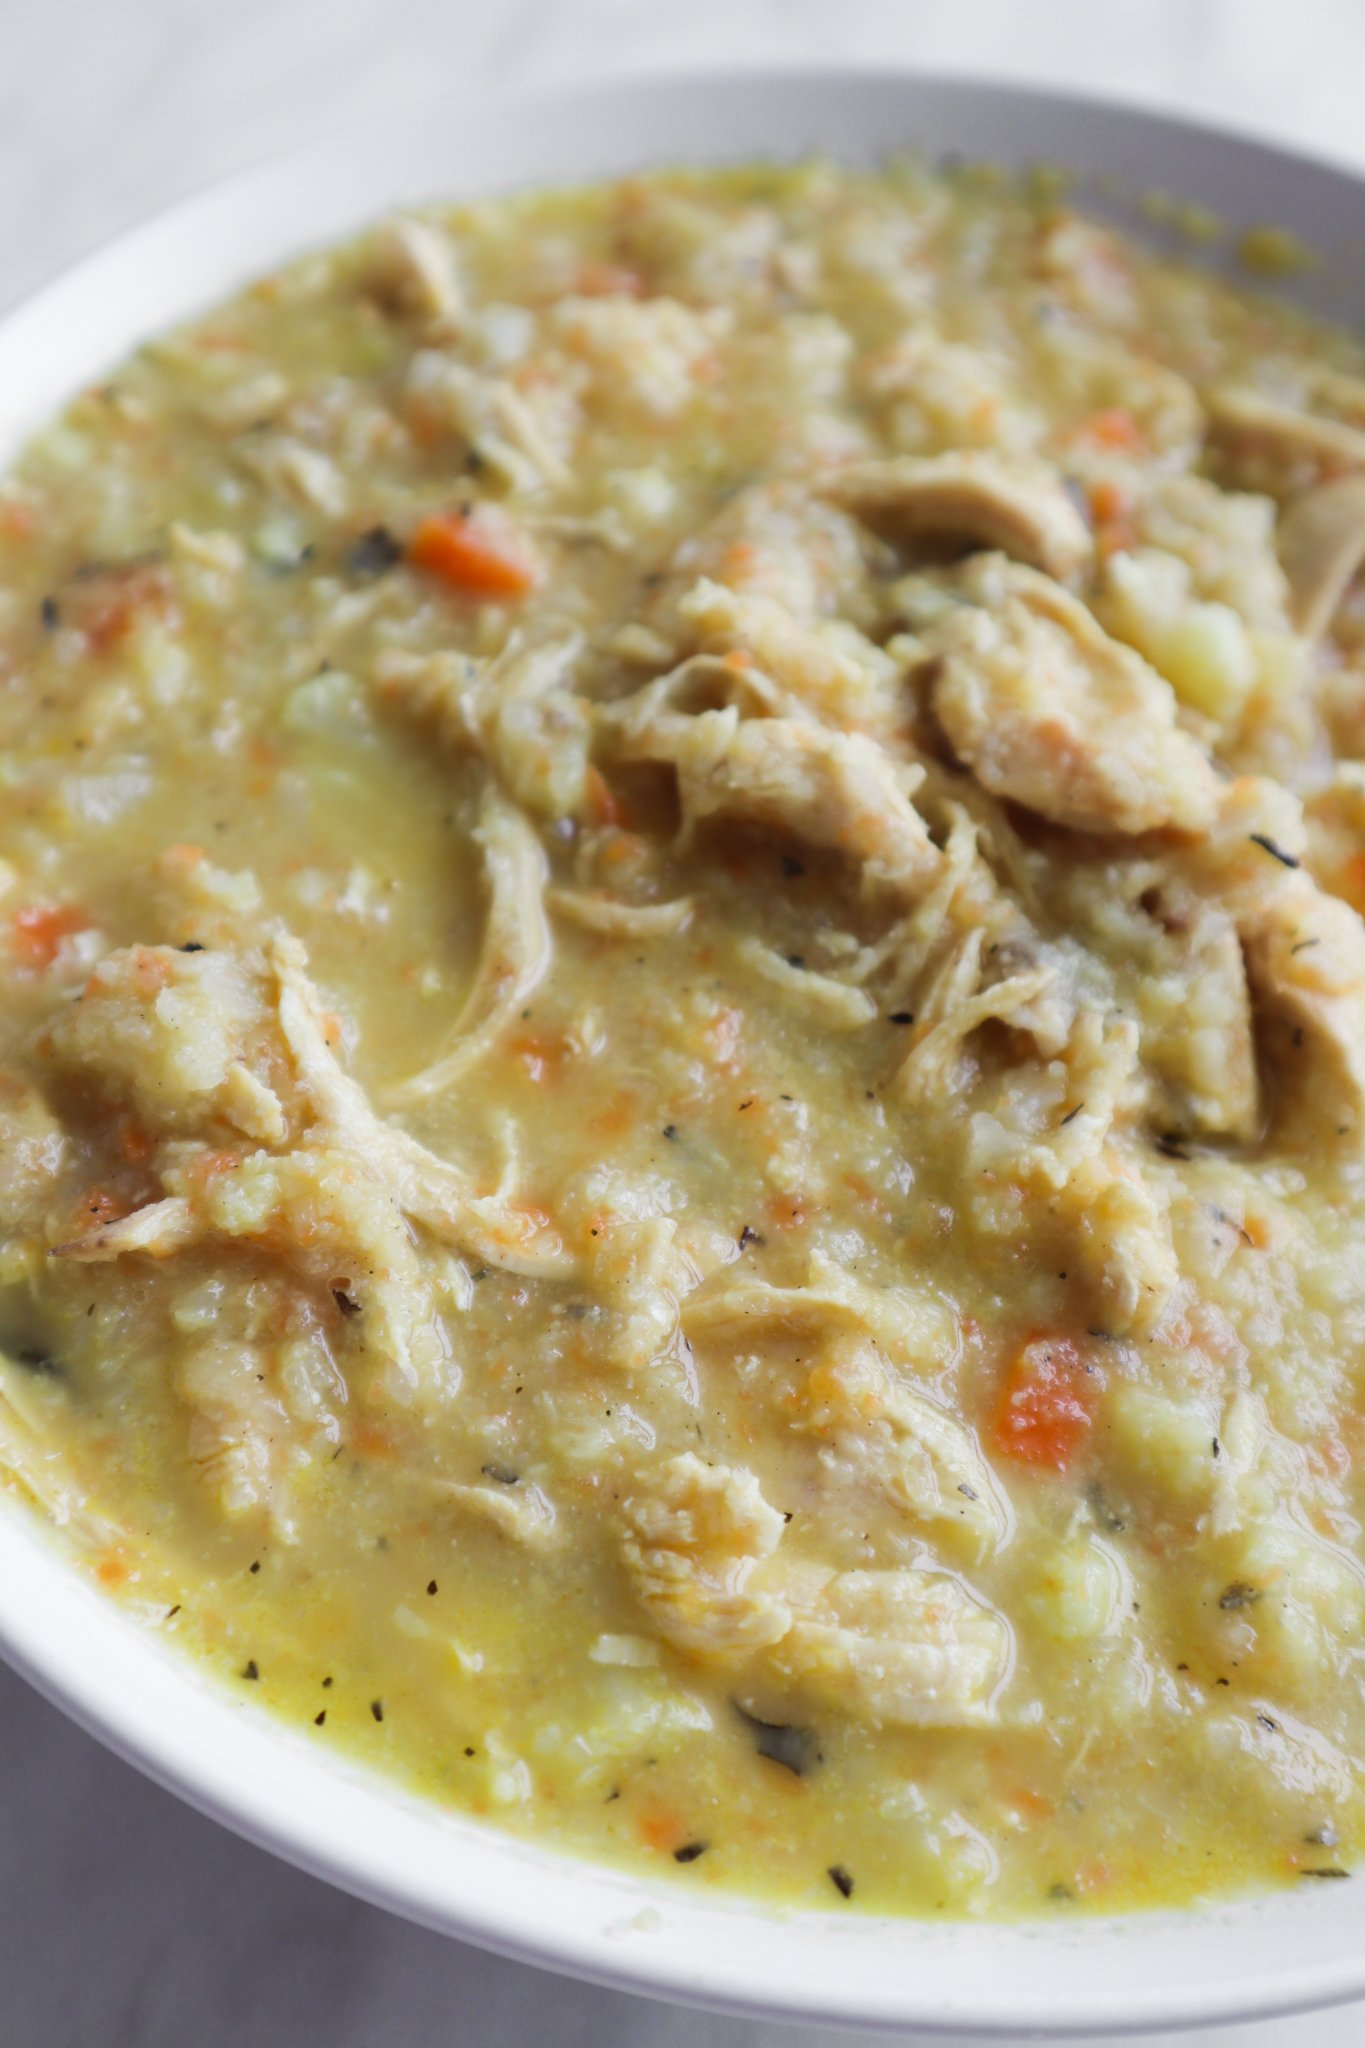 Super easy anti-inflammatory recipe for a delicious cauliflower chicken soup! This homemade soup recipe is light, flavorful, healthy and loaded with anti-inflammatory foods. Perfect healthy dinner idea for busy weeknights as it's ready in around 30 minutes, this clean eating recipe is also low carb, gluten free, dairy free and paleo.